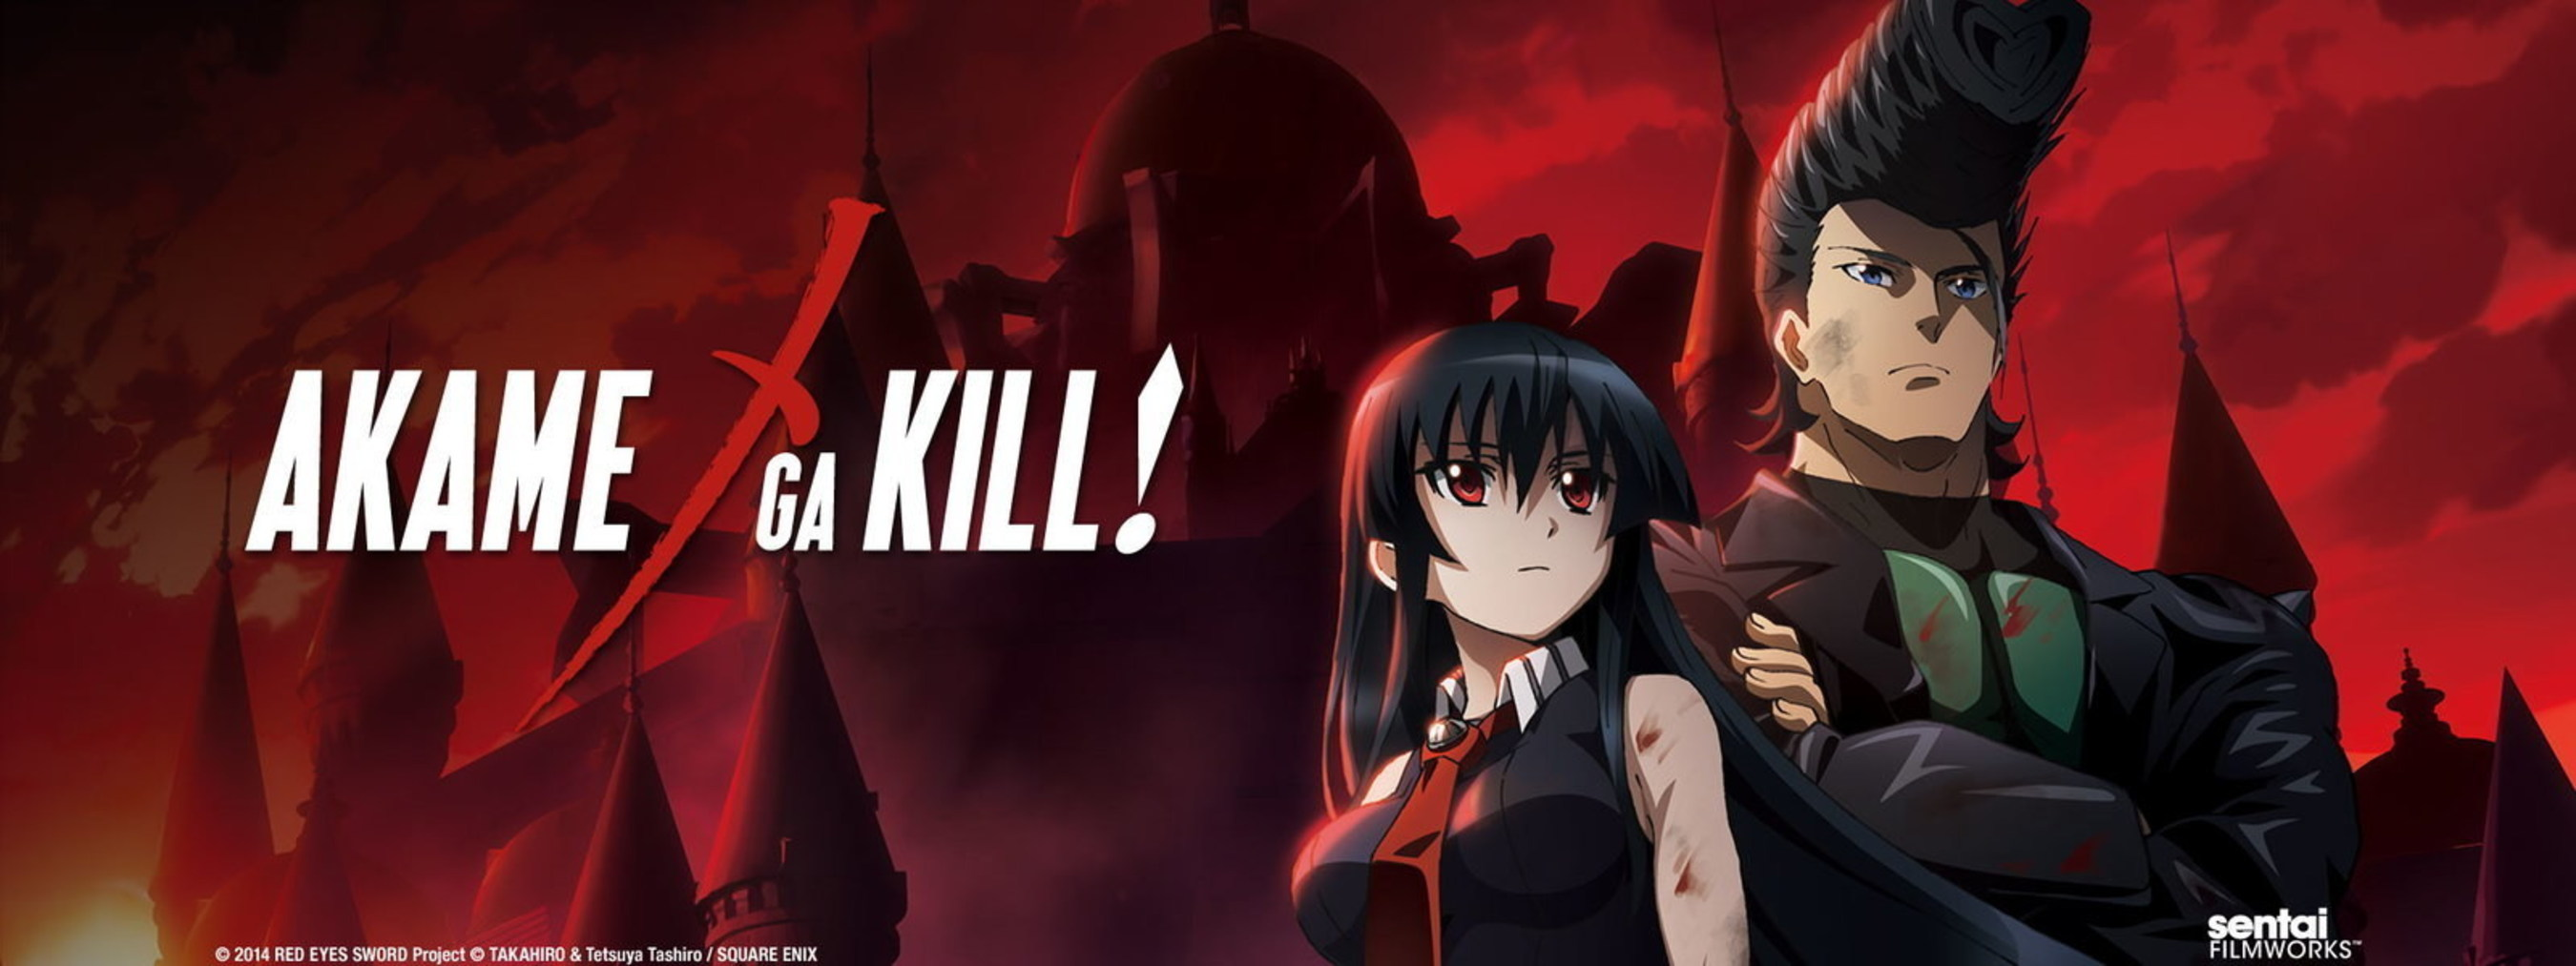 Akame ga Kill! Becomes Most Watched Series Premiere In Toonami History